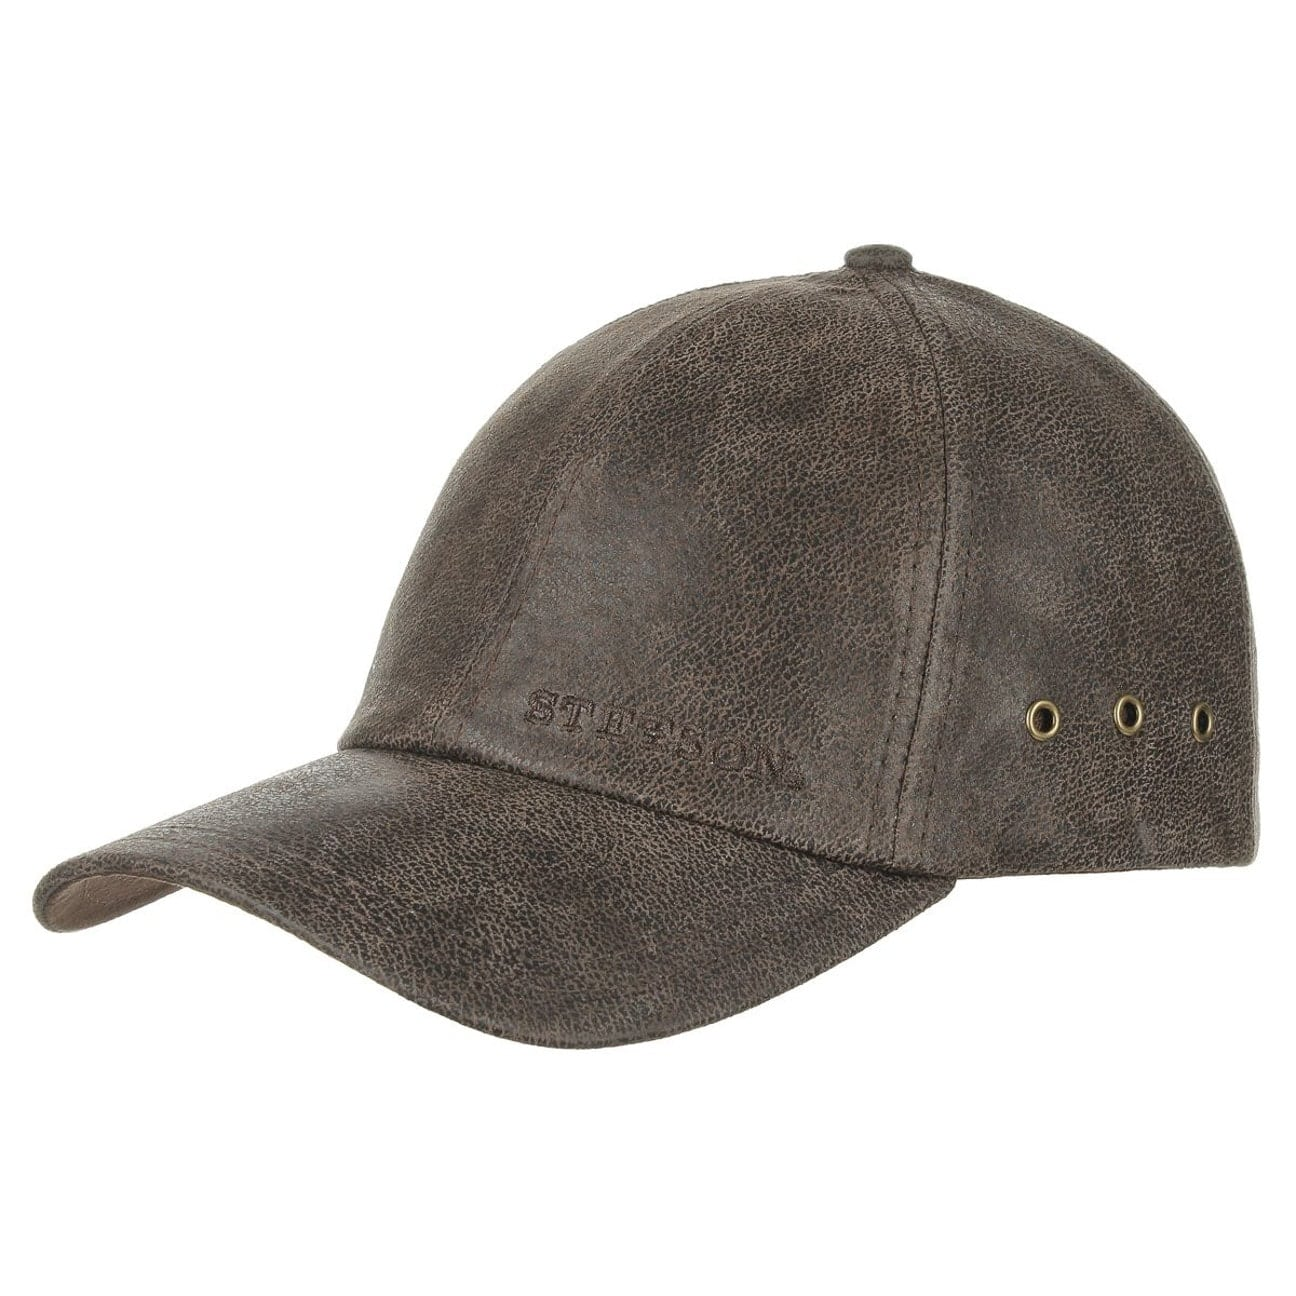 Liberty Leather Cap. by Stetson add2ff26f63